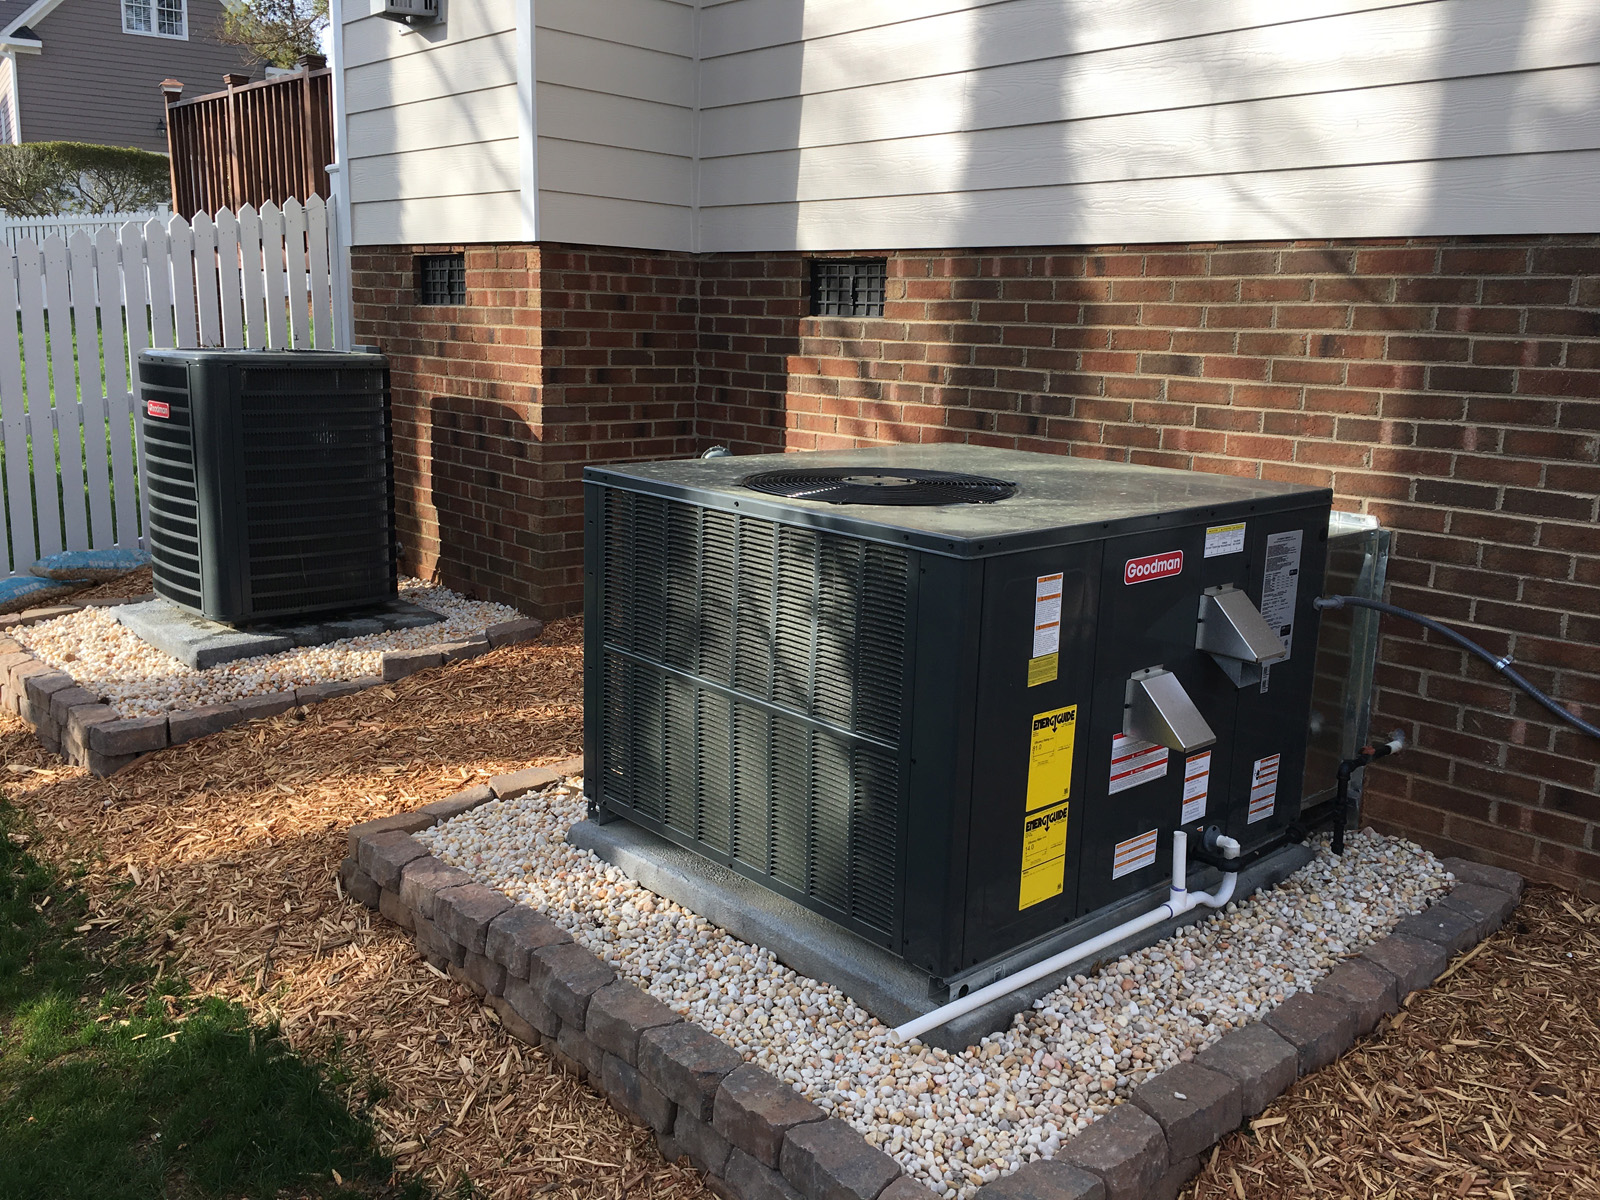 Goodman heating and air conditioning installation; both systems, Holly Springs, NC